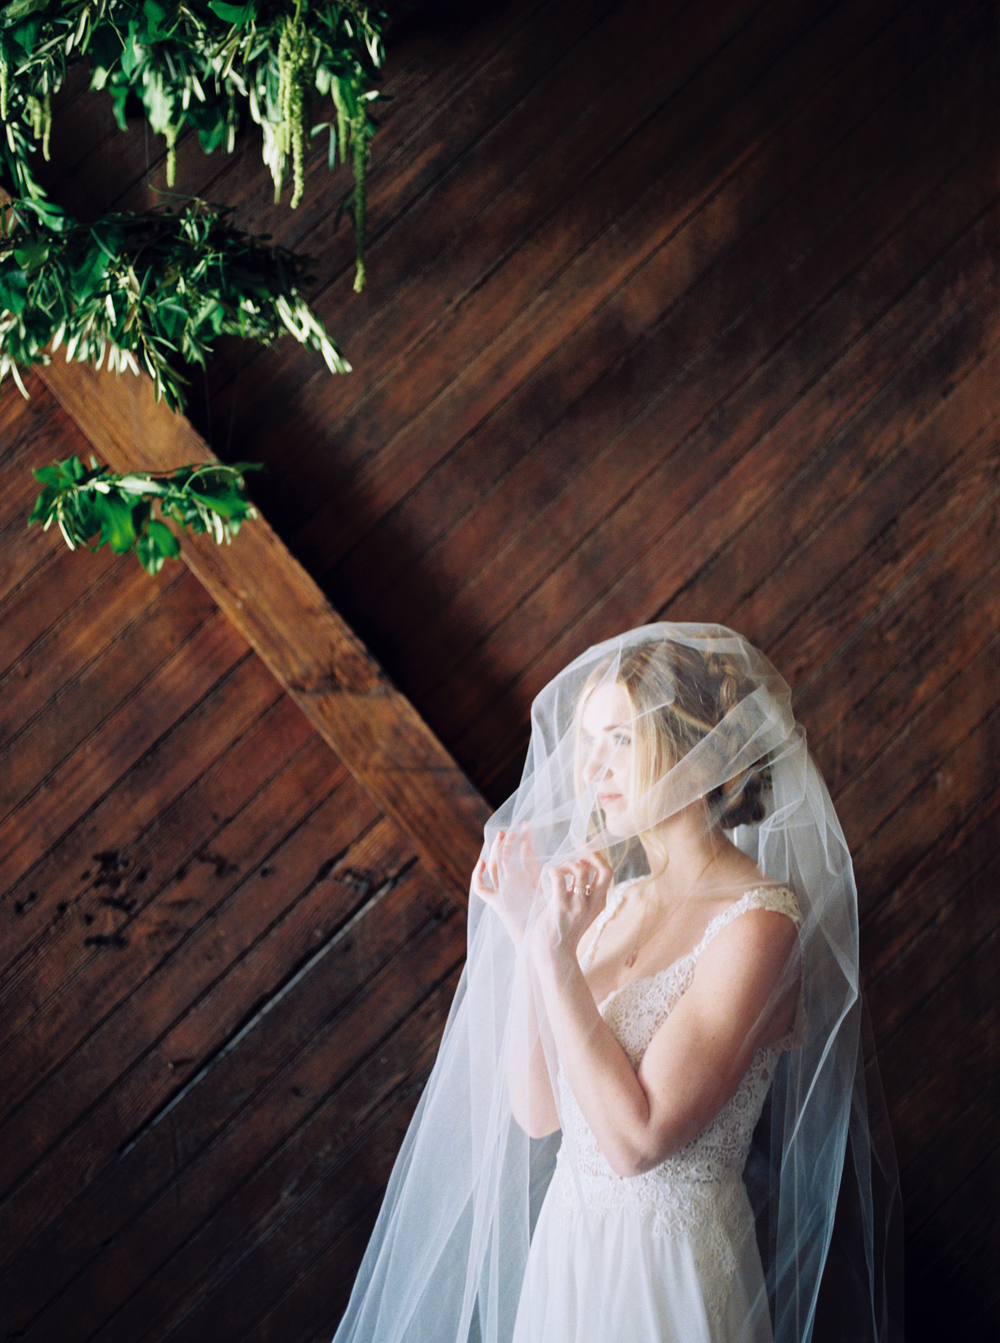 Abigail_Malone_Jackson_Terminal_Film_Wedding_Photography_Knoxville_Tennessee_Spring_Wedding-6.jpg